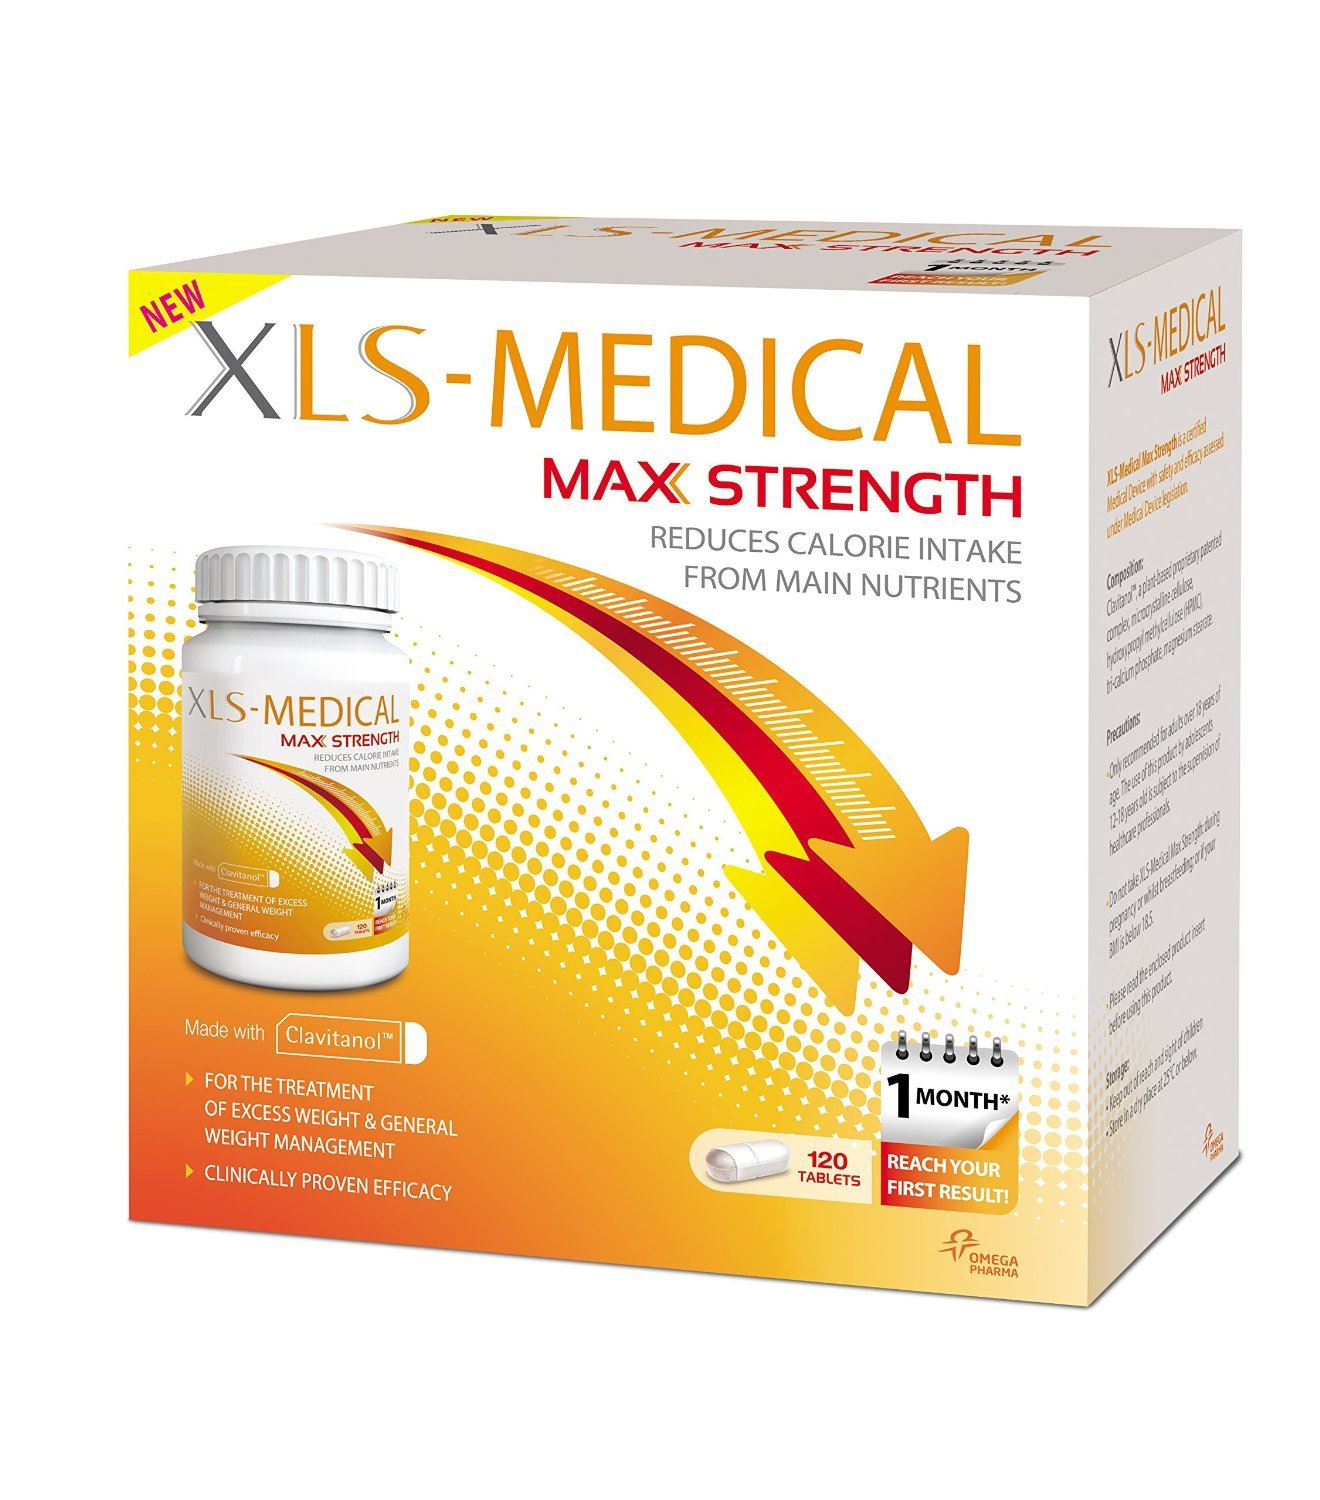 XLS Medical Max Strength Diet Pills for Weight Loss - Pack